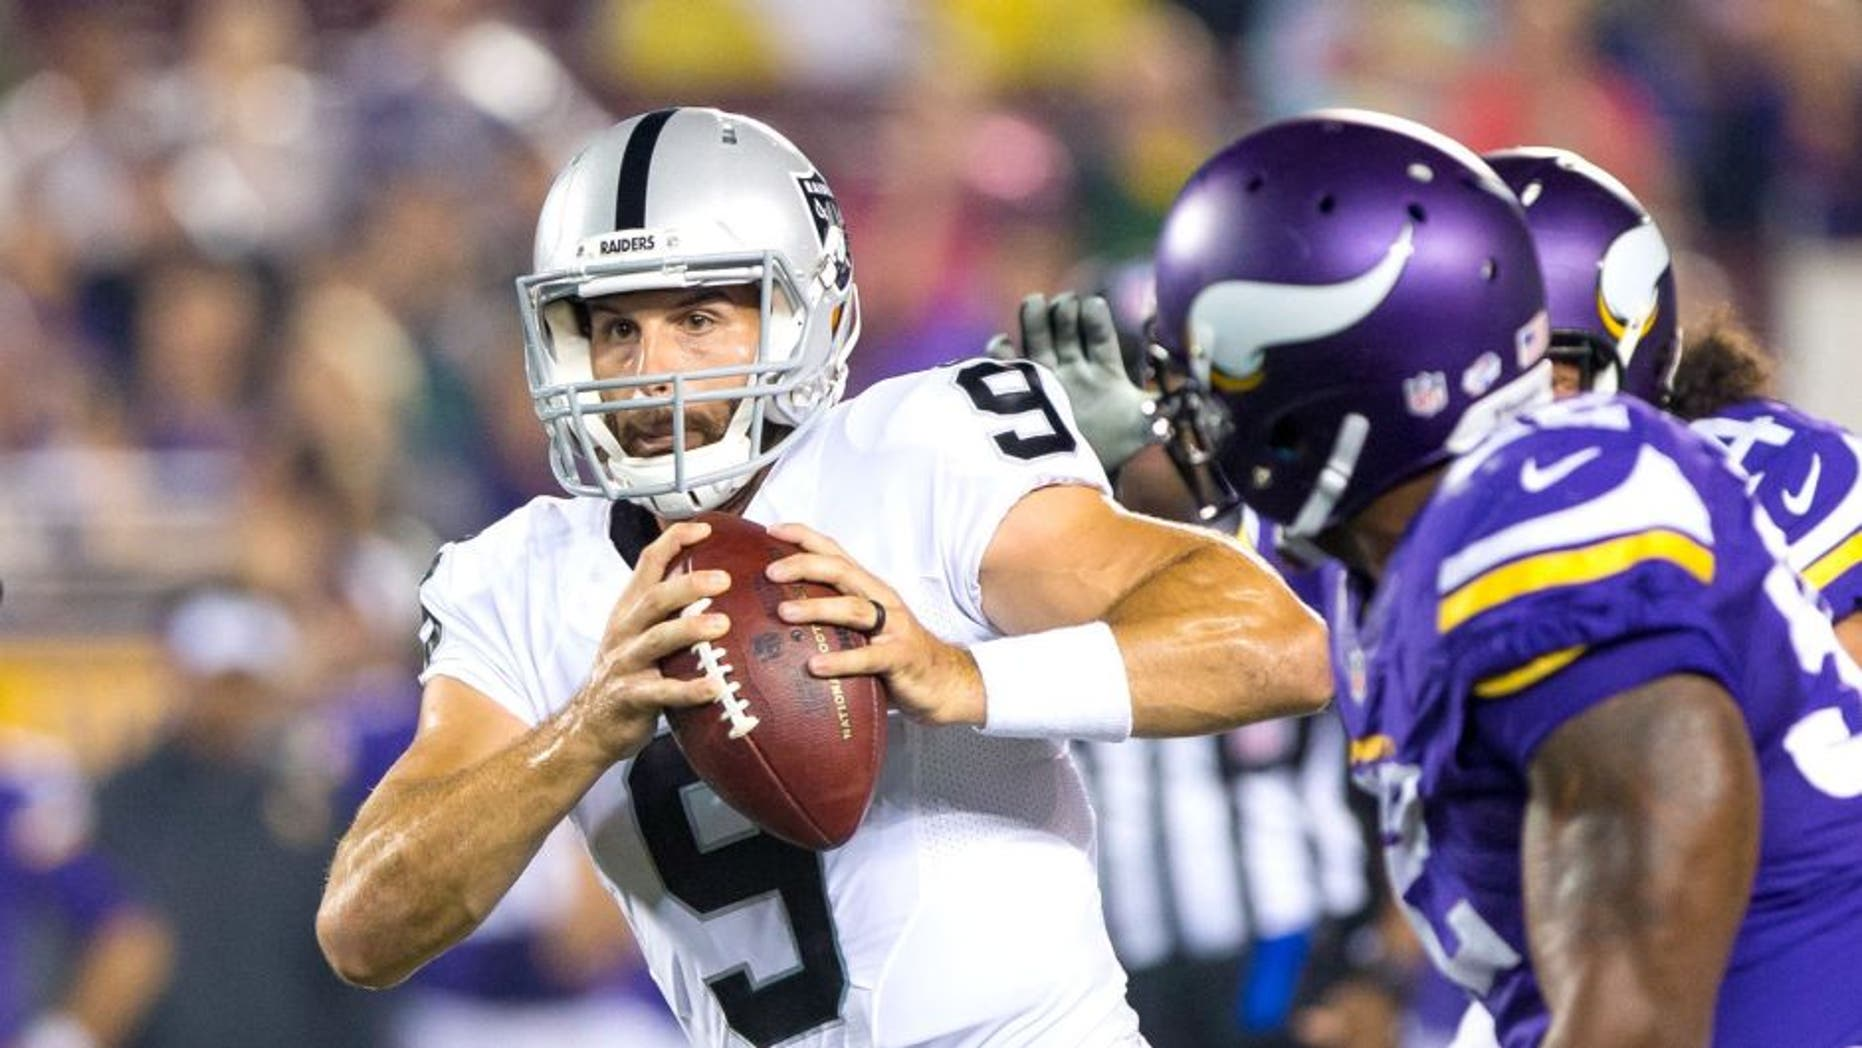 Aug 22, 2015; Minneapolis, MN, USA; Oakland Raiders quarterback Christian Ponder (9) scrambles in the third quarter against the Minnesota Vikings at TCF Bank Stadium. The Minnesota Vikings beat the Oakland Raiders 20-12. Mandatory Credit: Brad Rempel-USA TODAY Sports